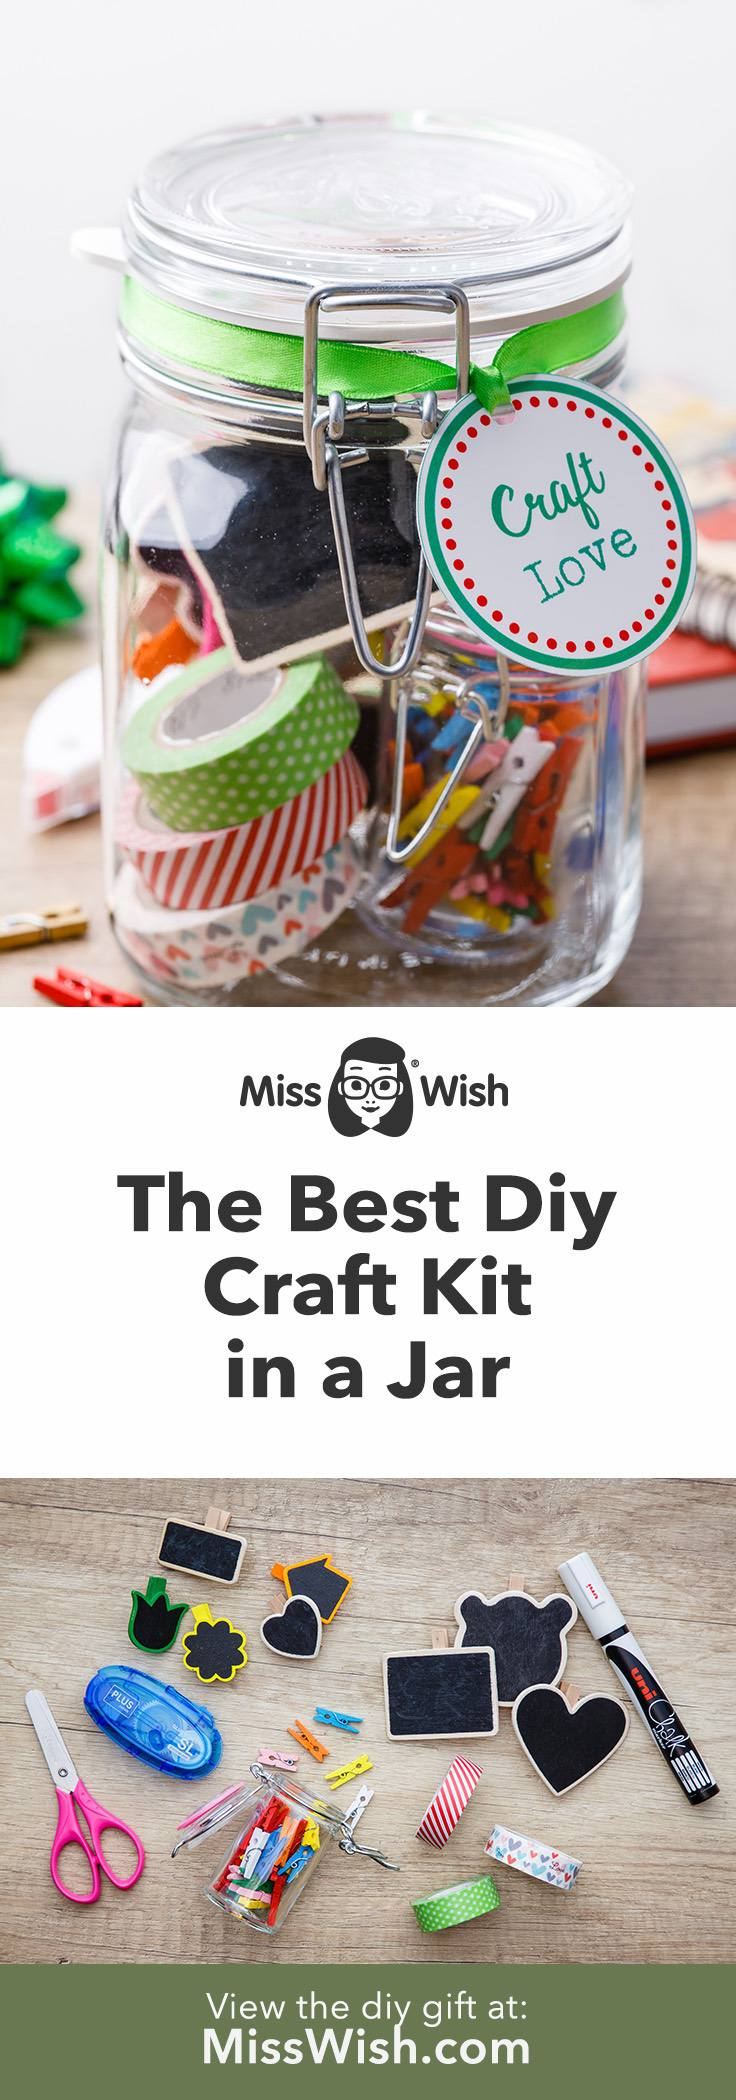 Homemade Craft Kit in a Jar